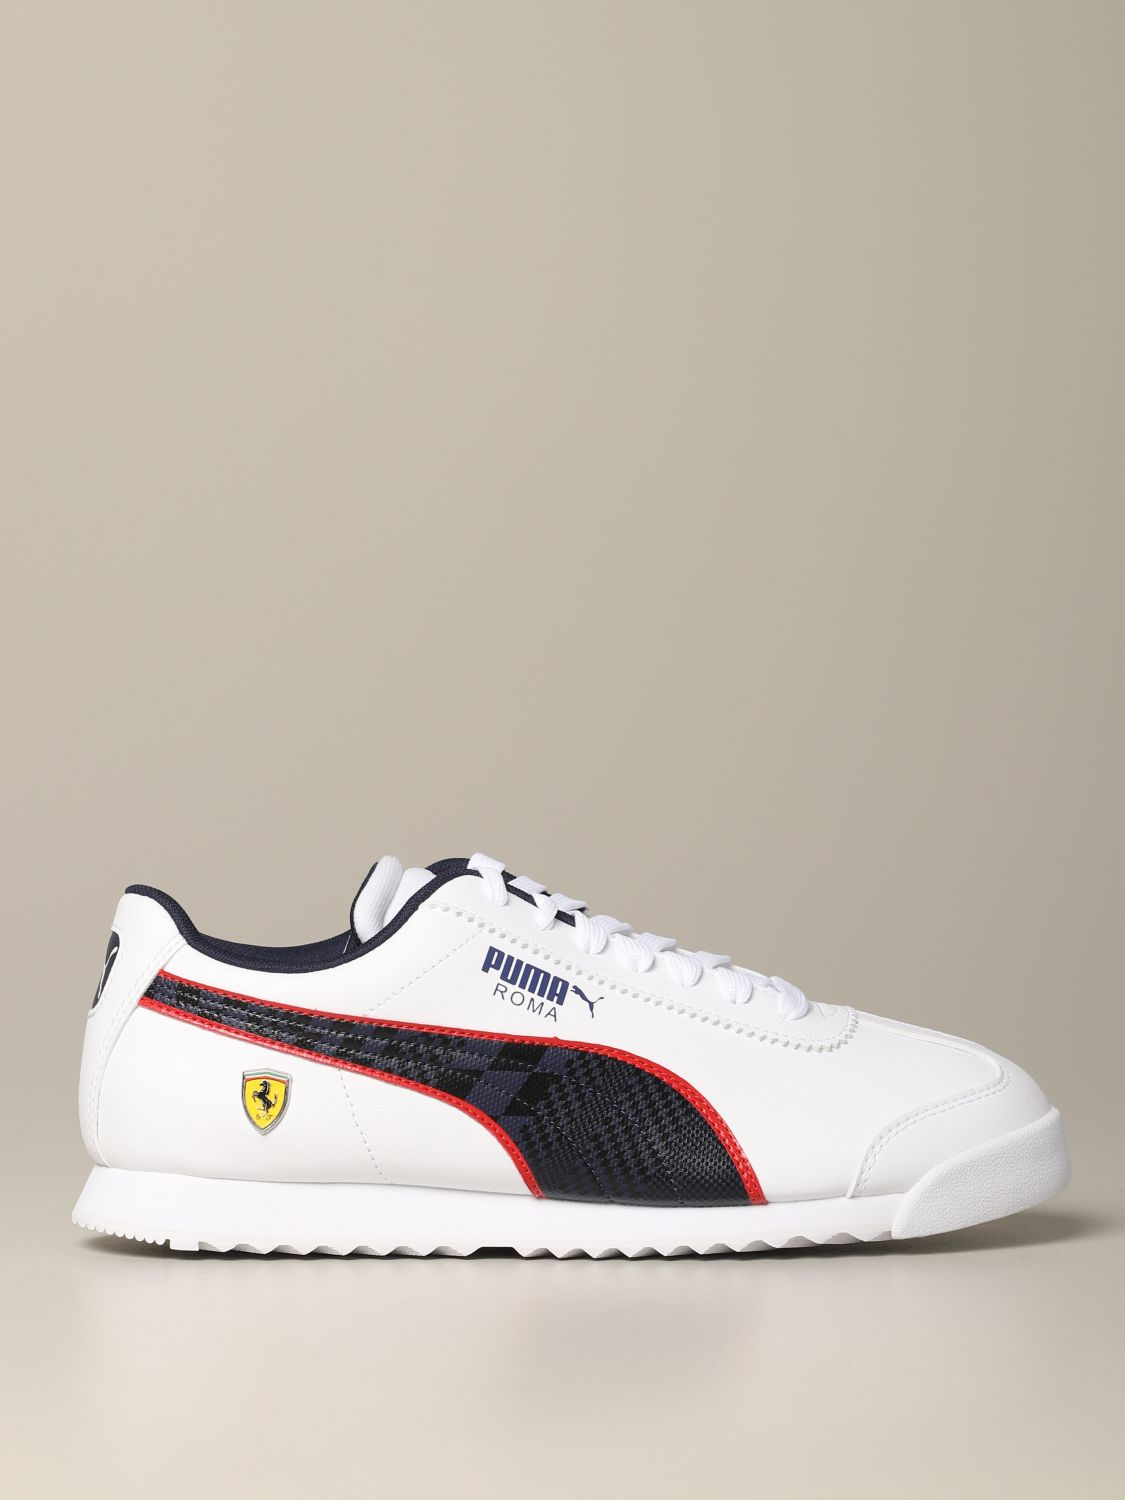 pumas chaussure homme